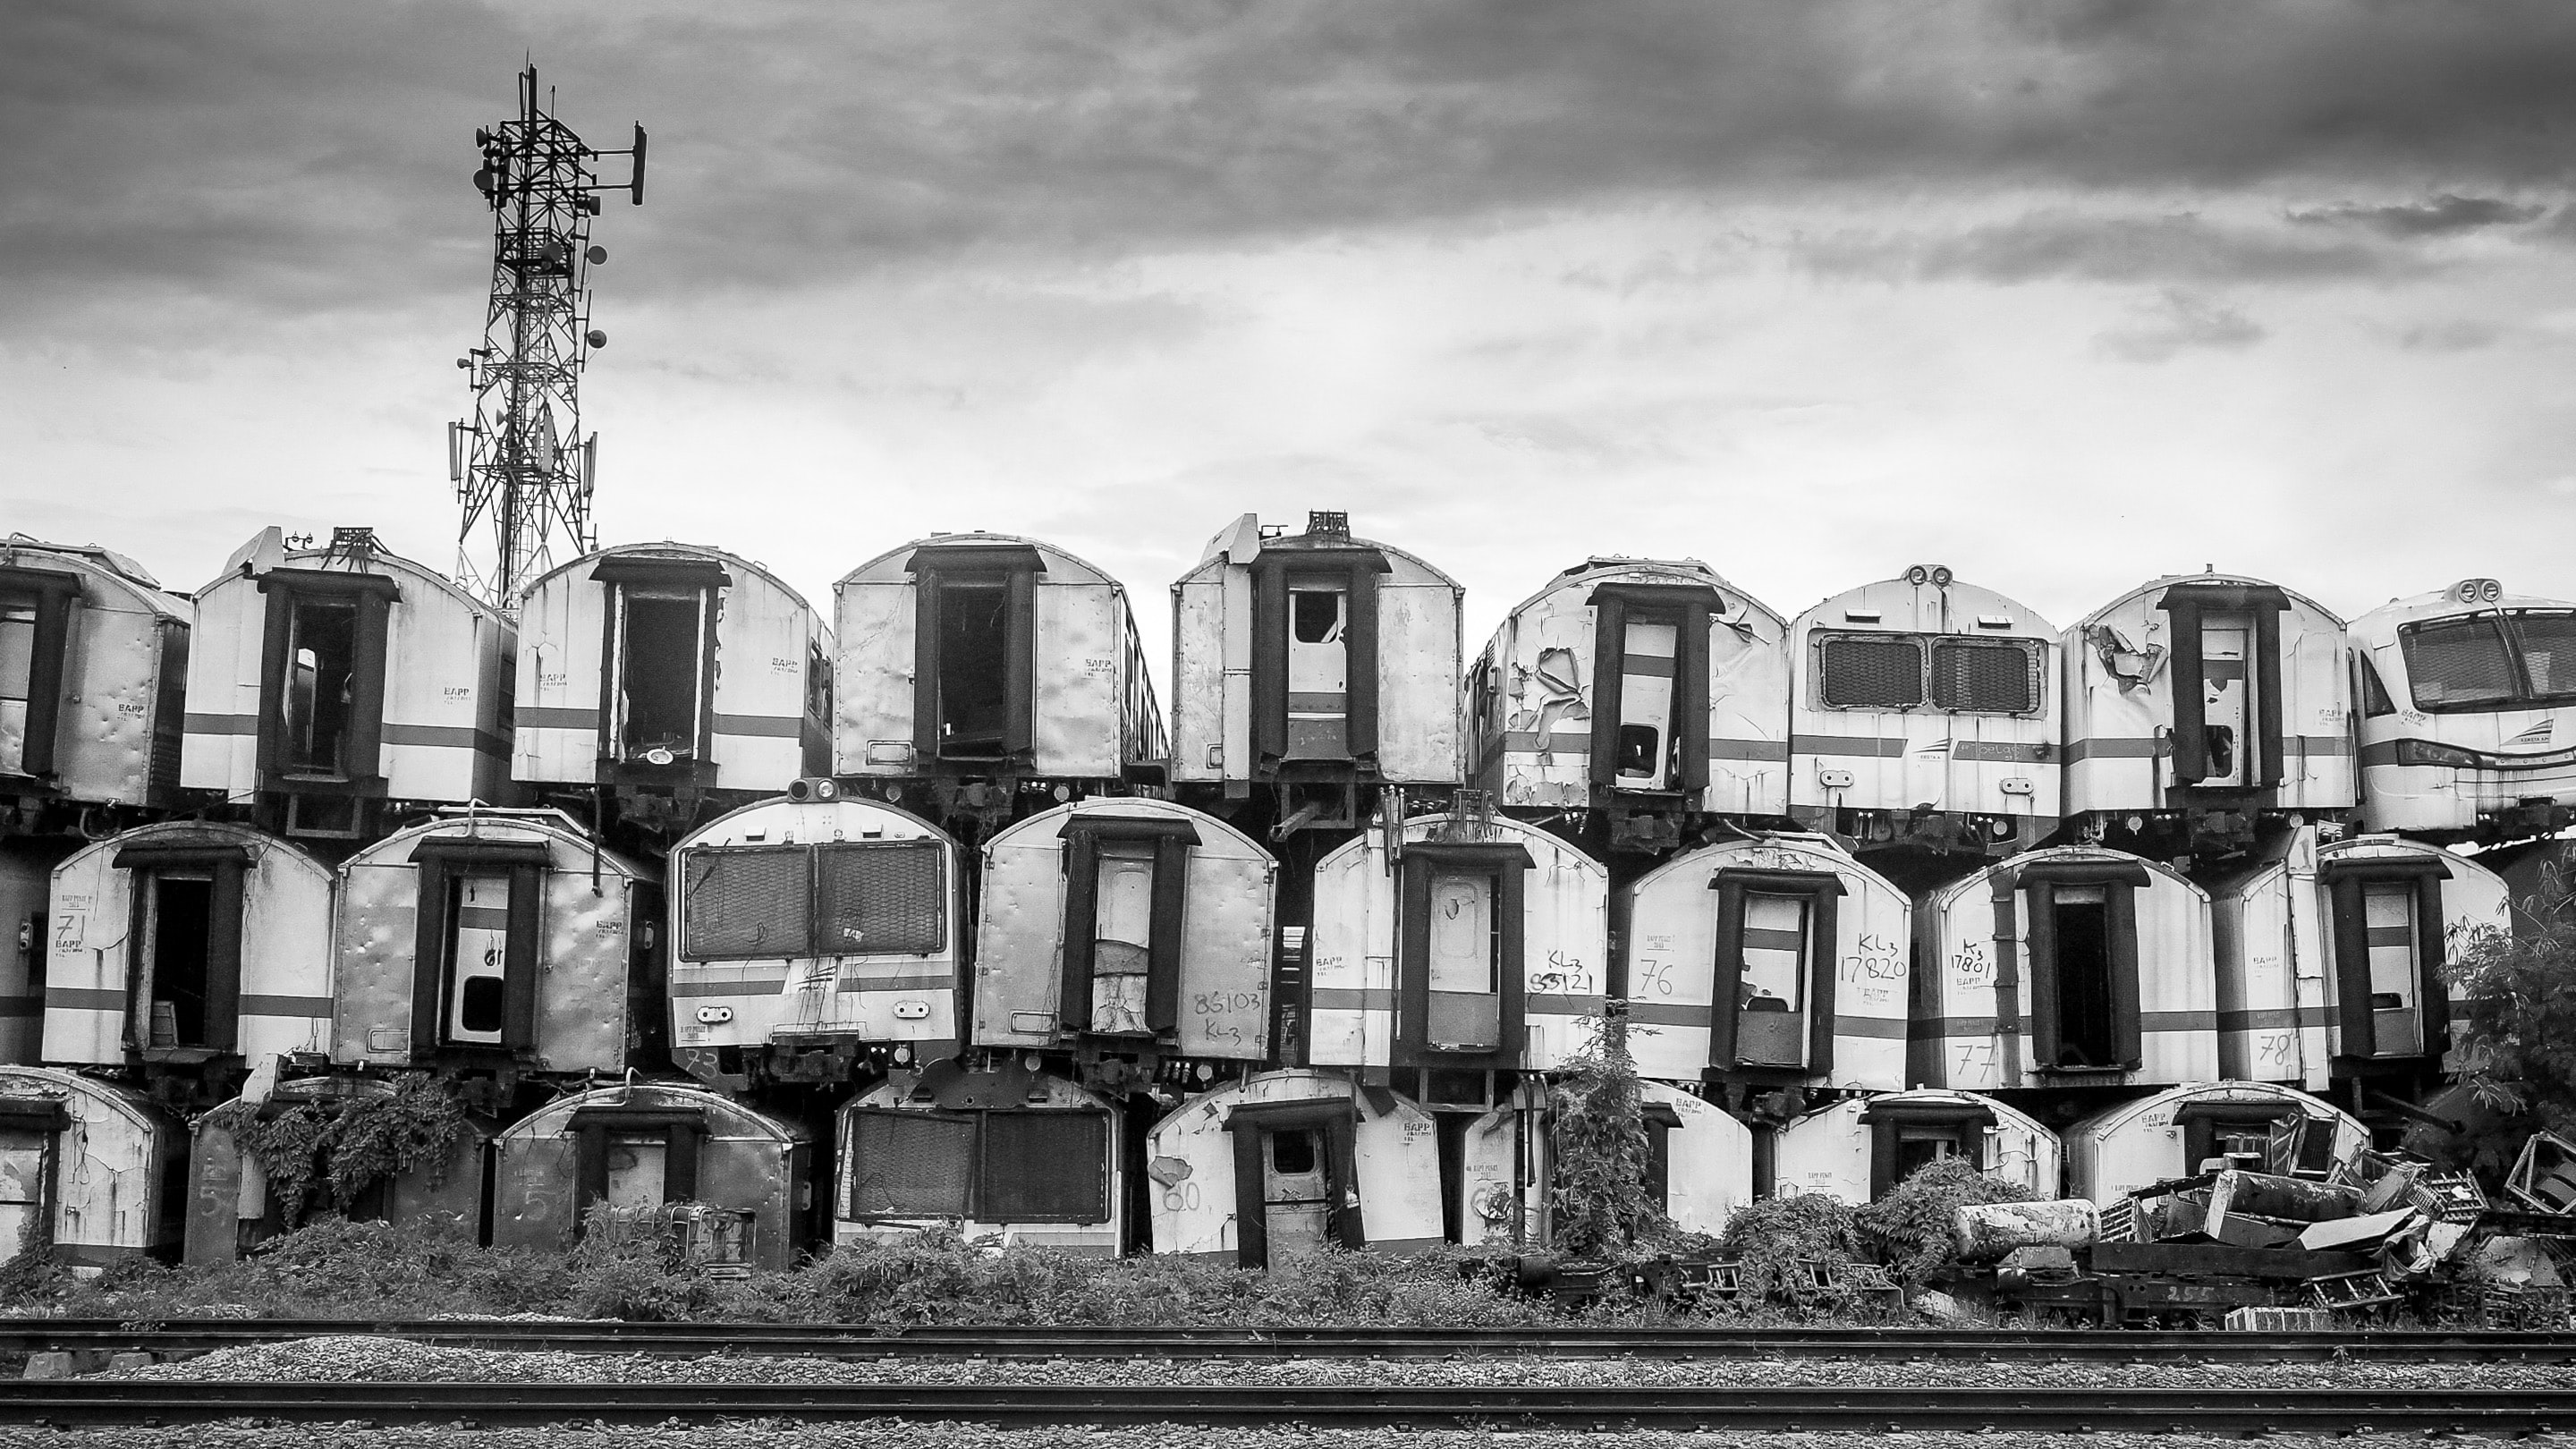 grayscale photography of piling of container vans